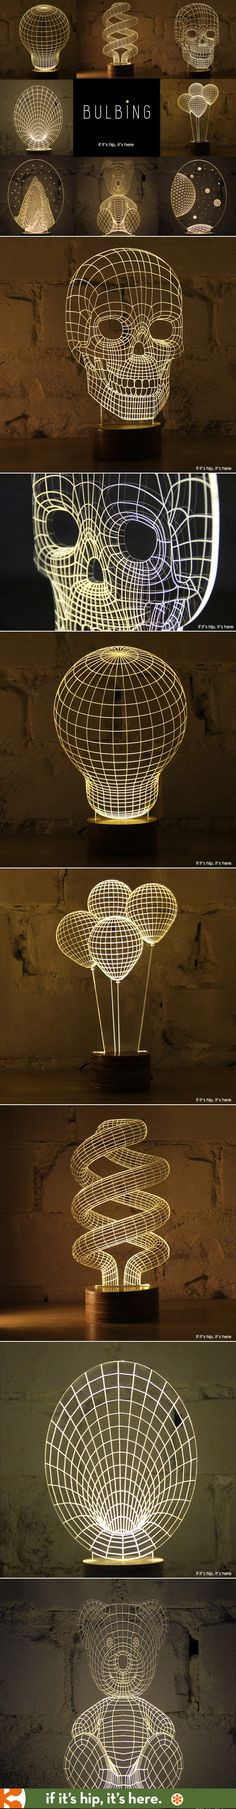 Flat led lamps appear 3D.